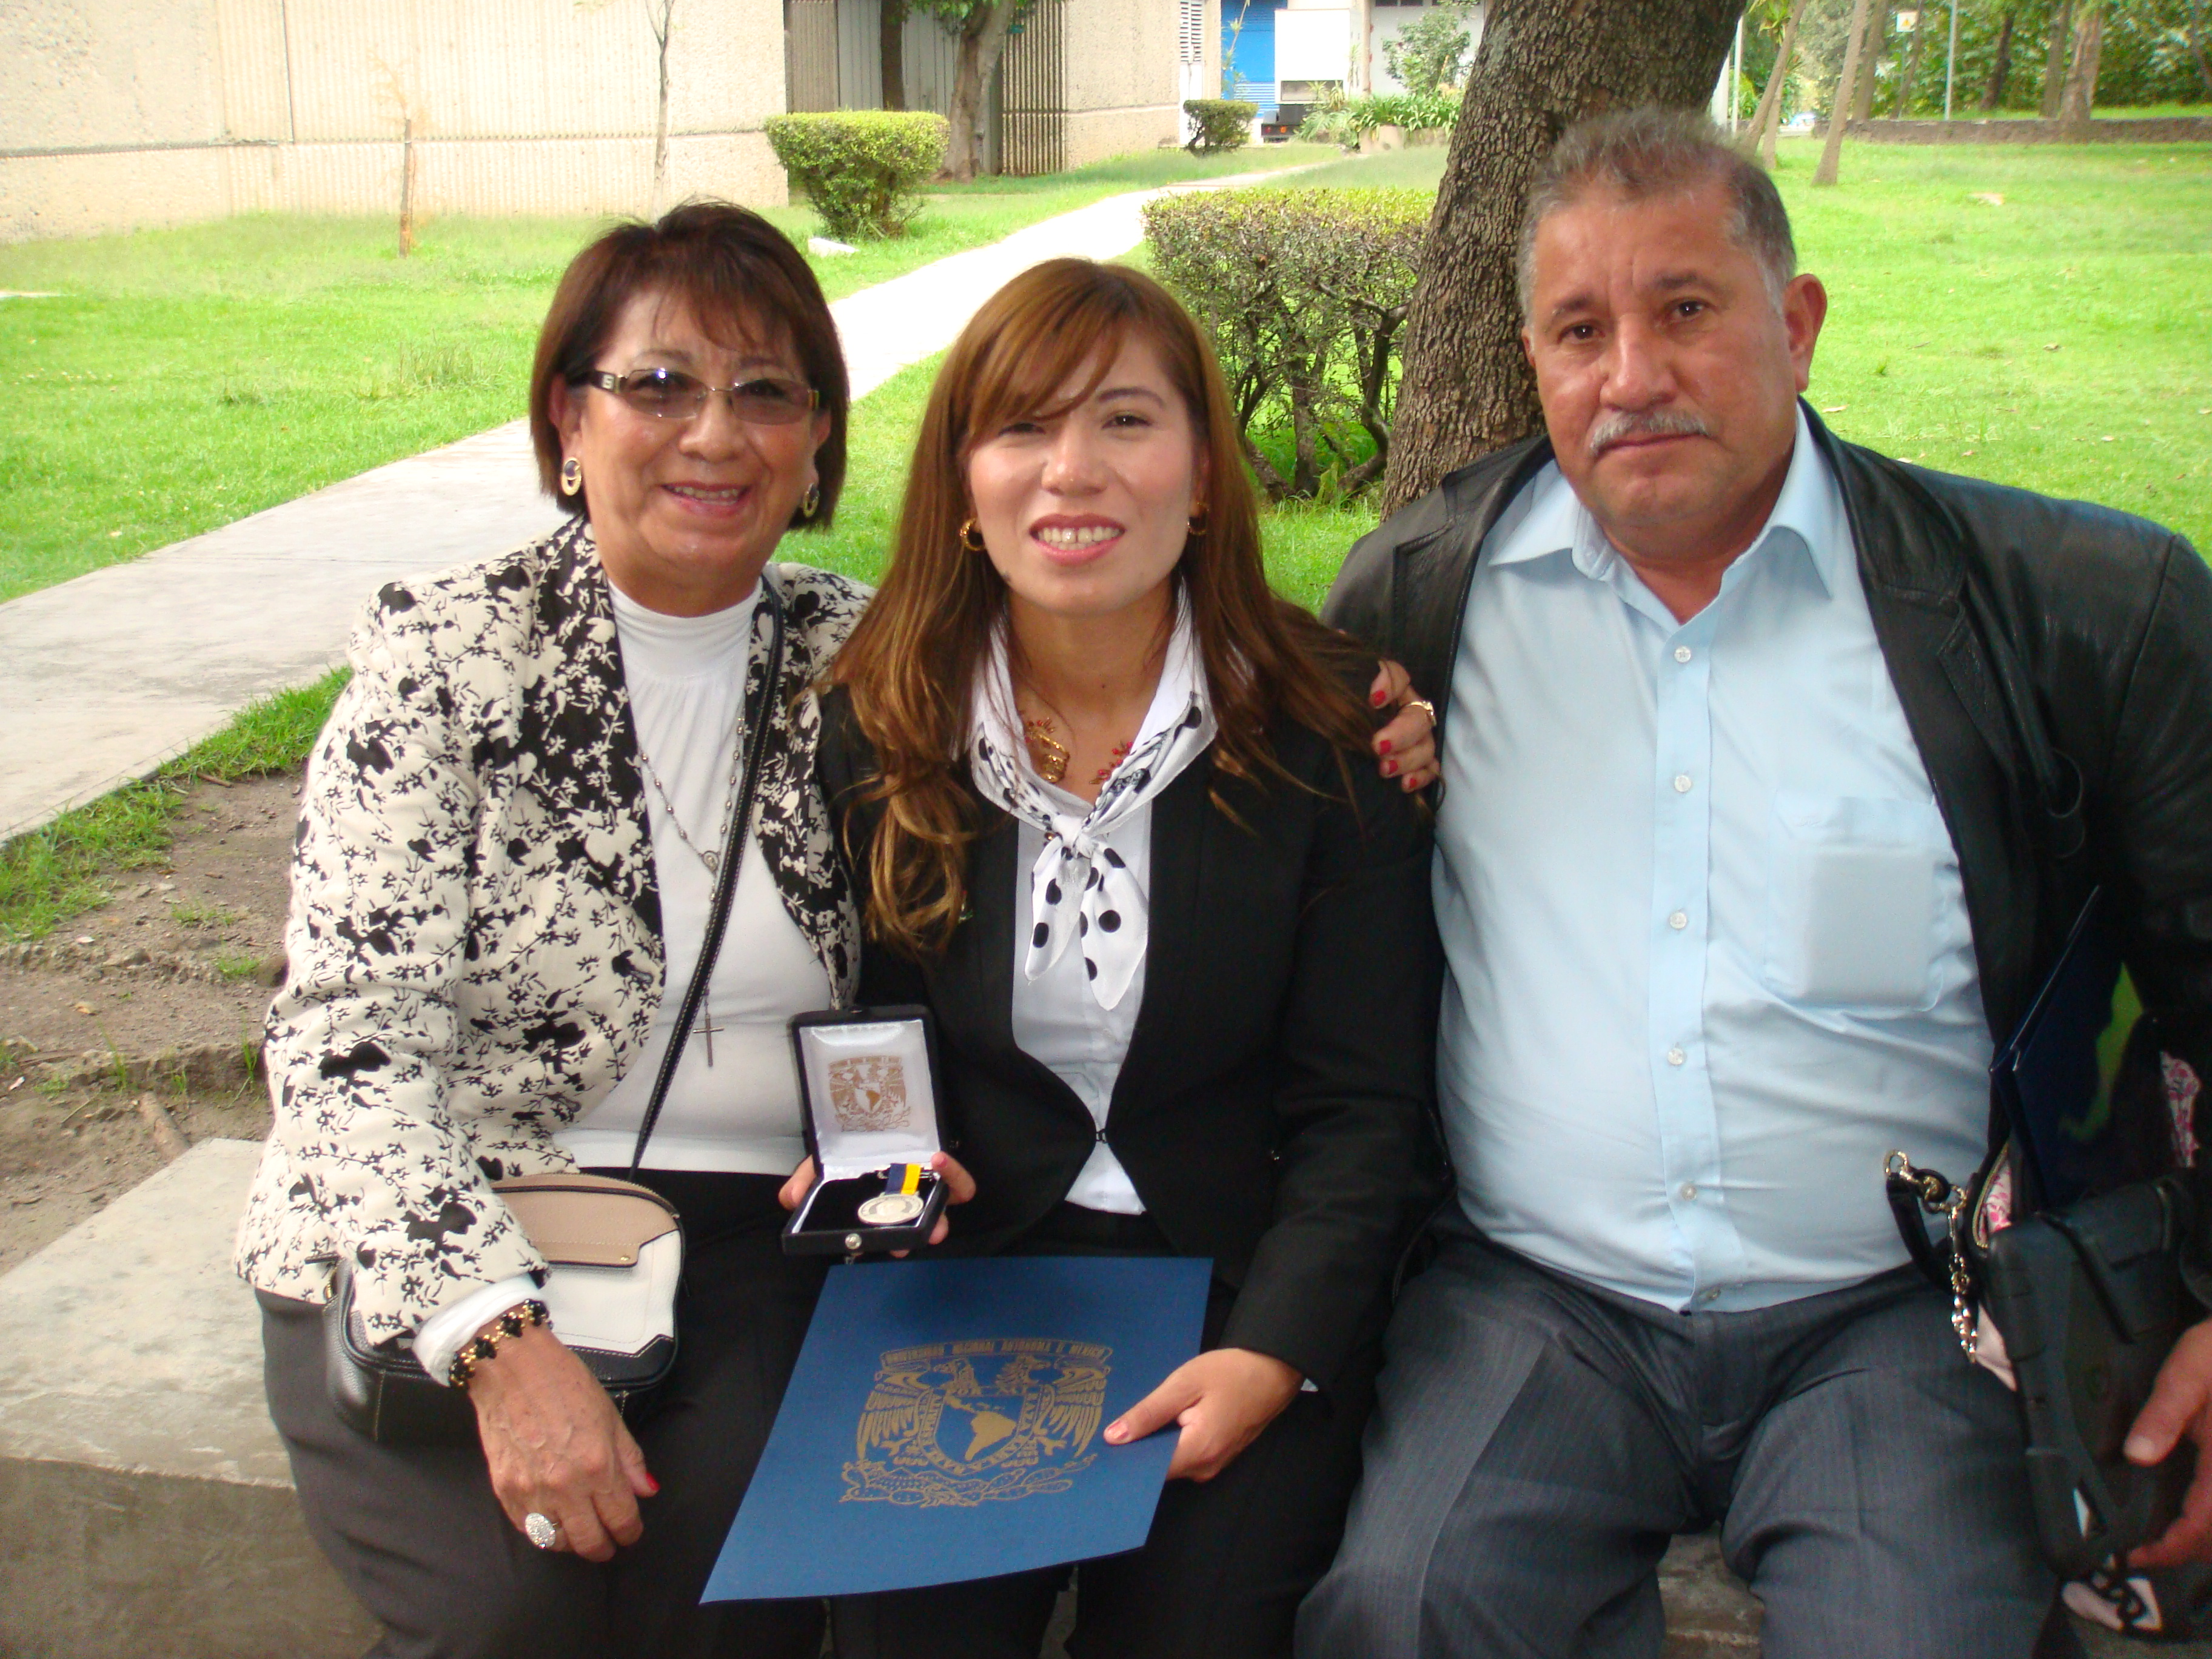 Ana Torres with her parents, Photo: Courtesy of Ana Toores